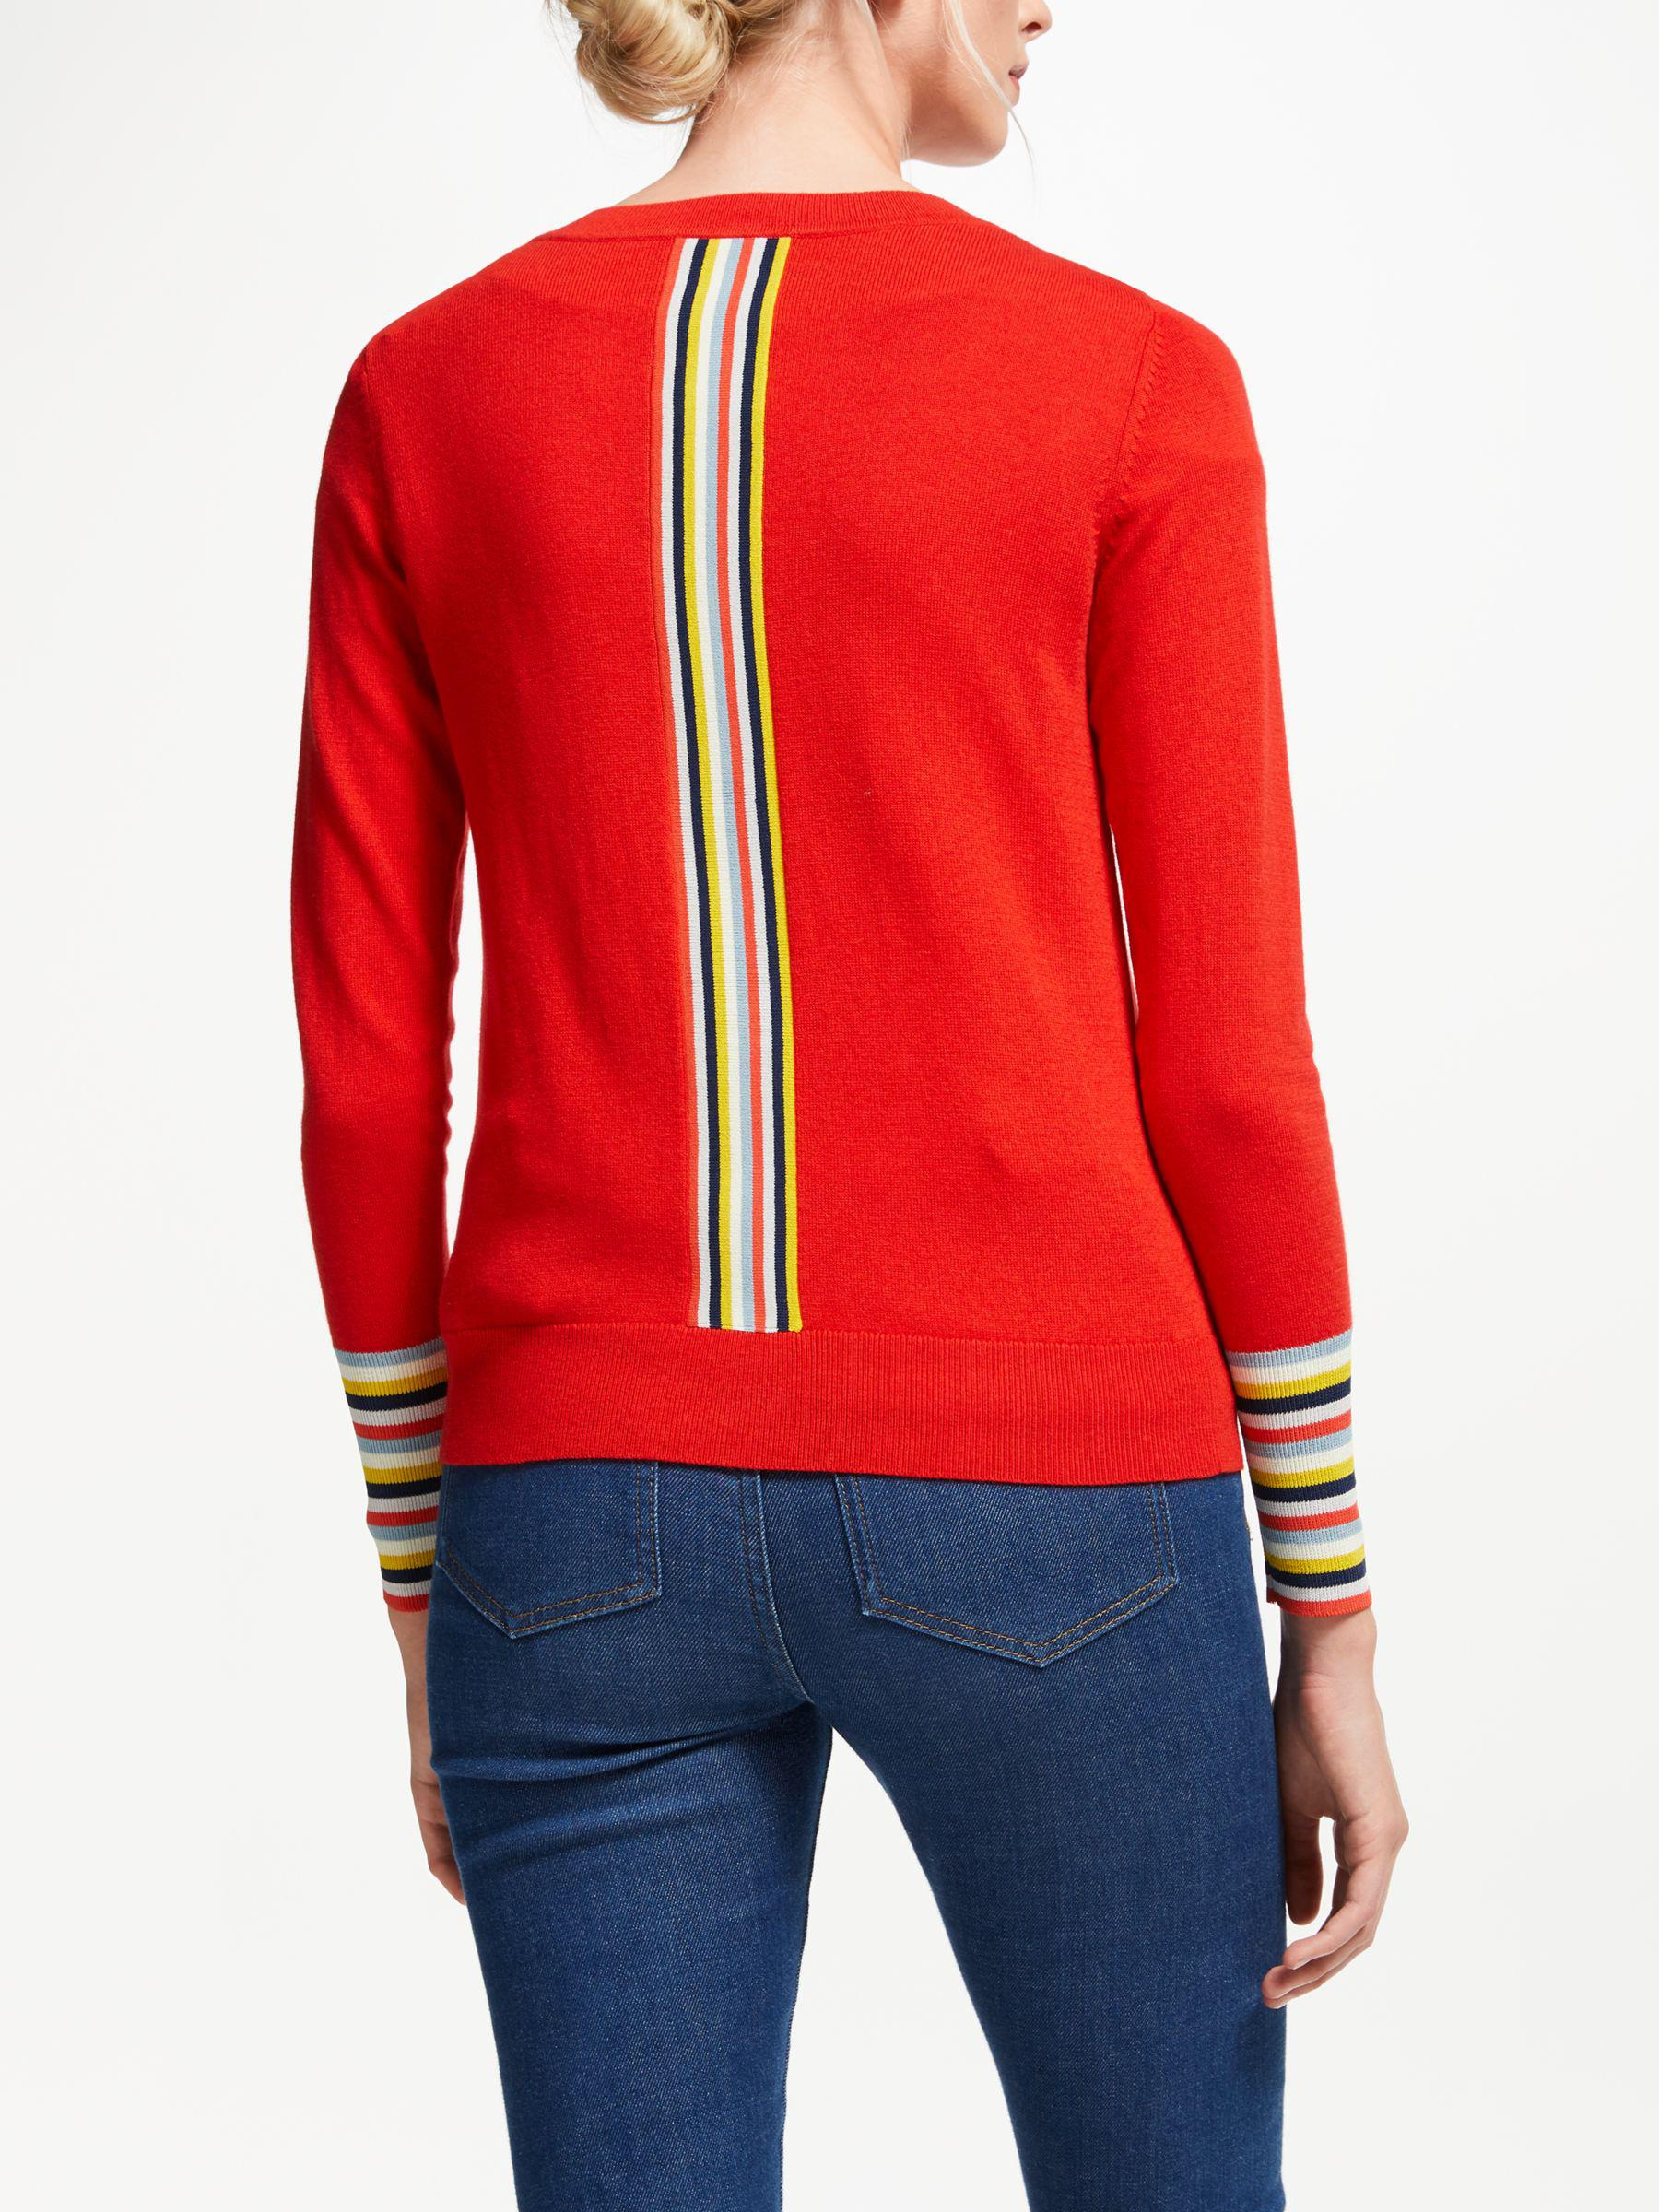 Boden Cassandra Cardigan In Red Lyst